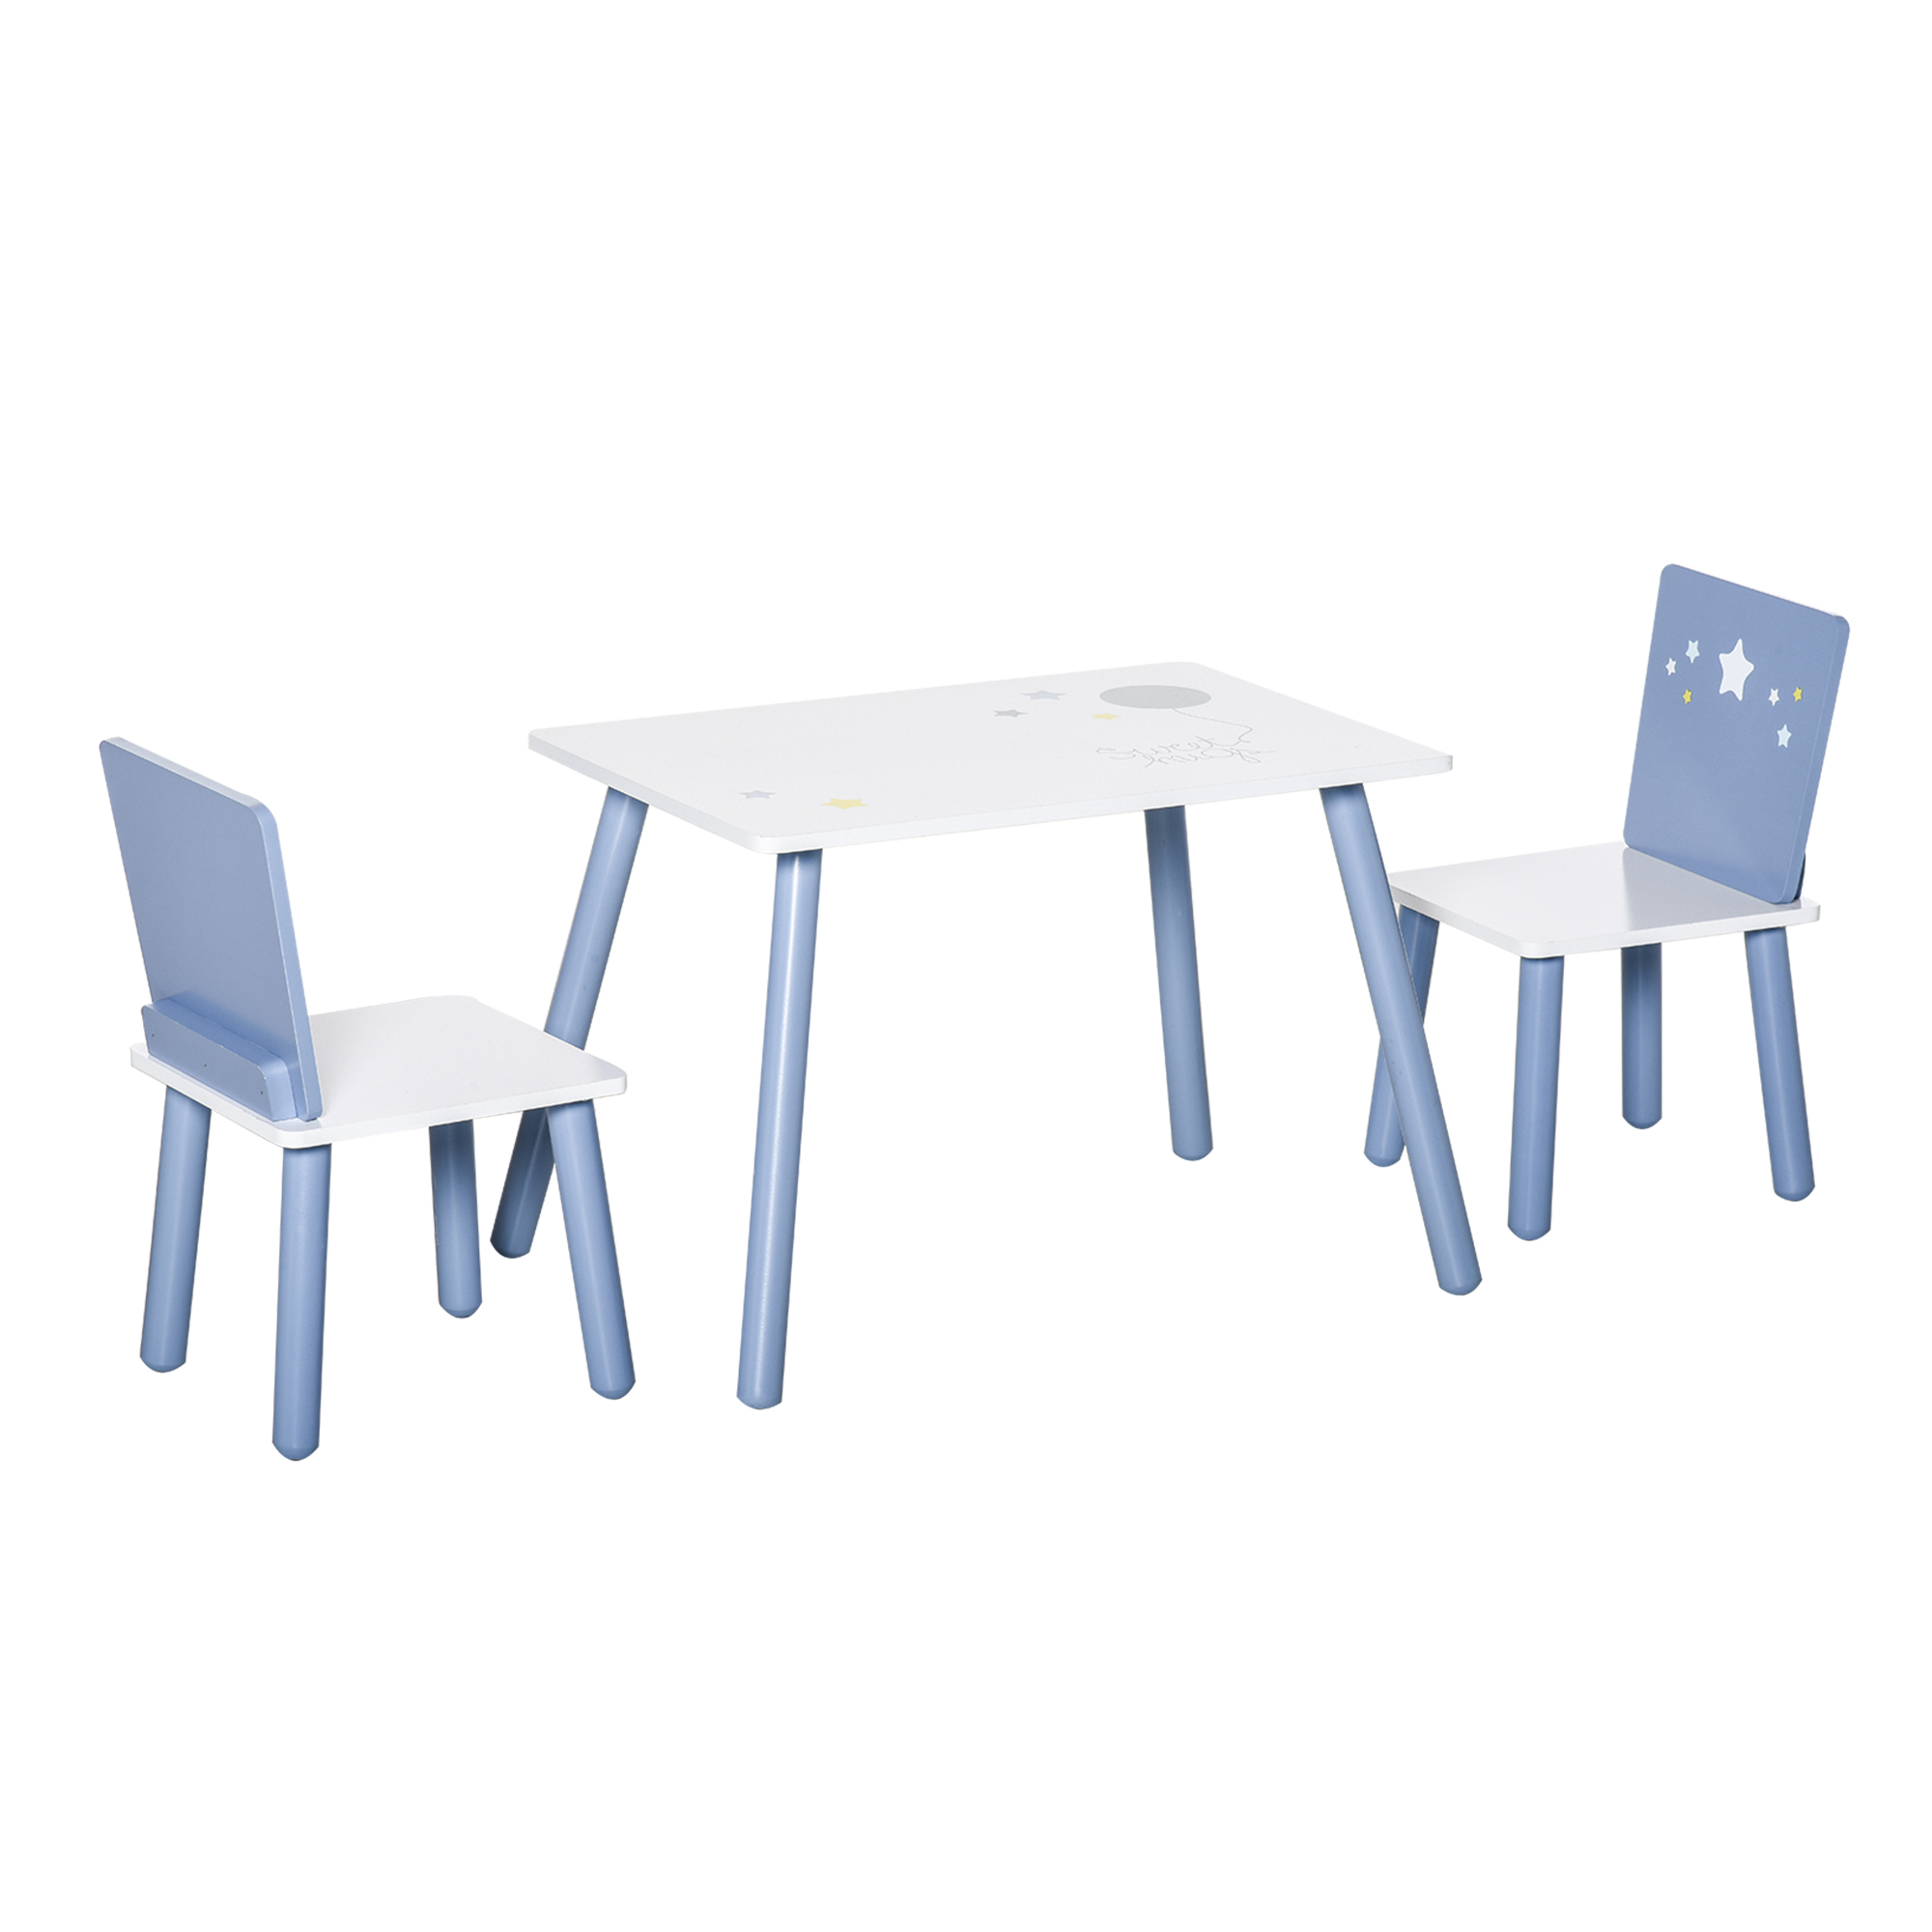 HOMCOM Kids Table and Chairs Set 3 Pieces 1 Table 2 Chairs Toddler Wooden Multi-usage Easy Assembly Star Image Ornament   Aosom IE